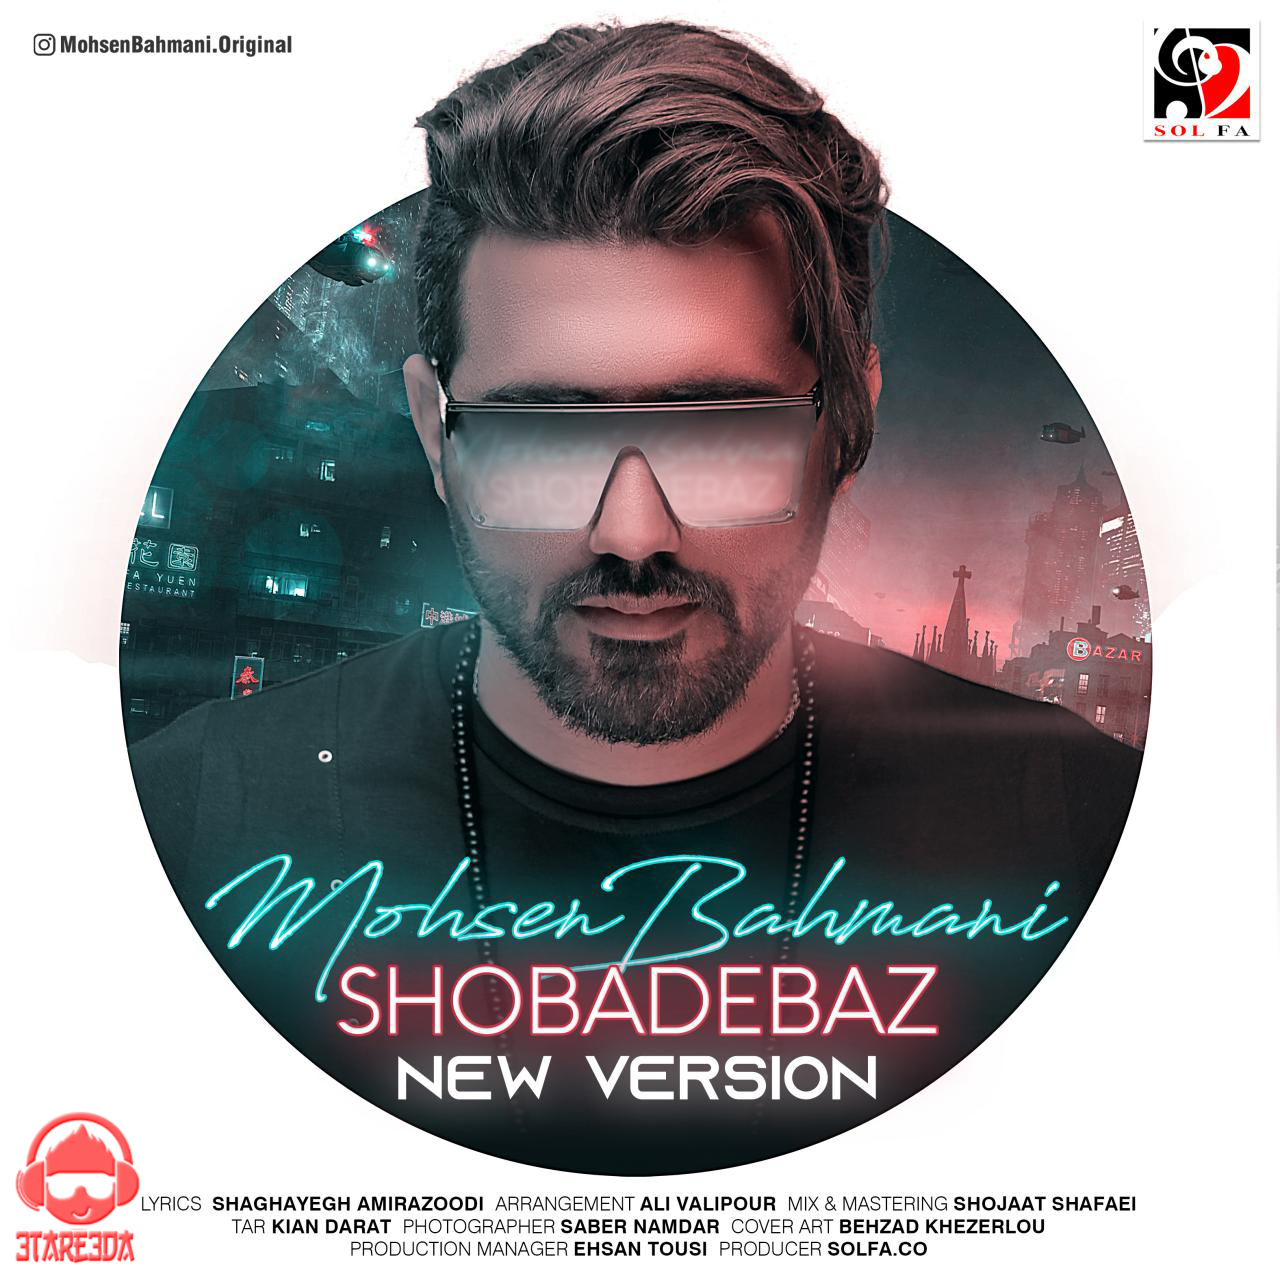 Mohsen Bahmani - Shobadebaz (New Version)